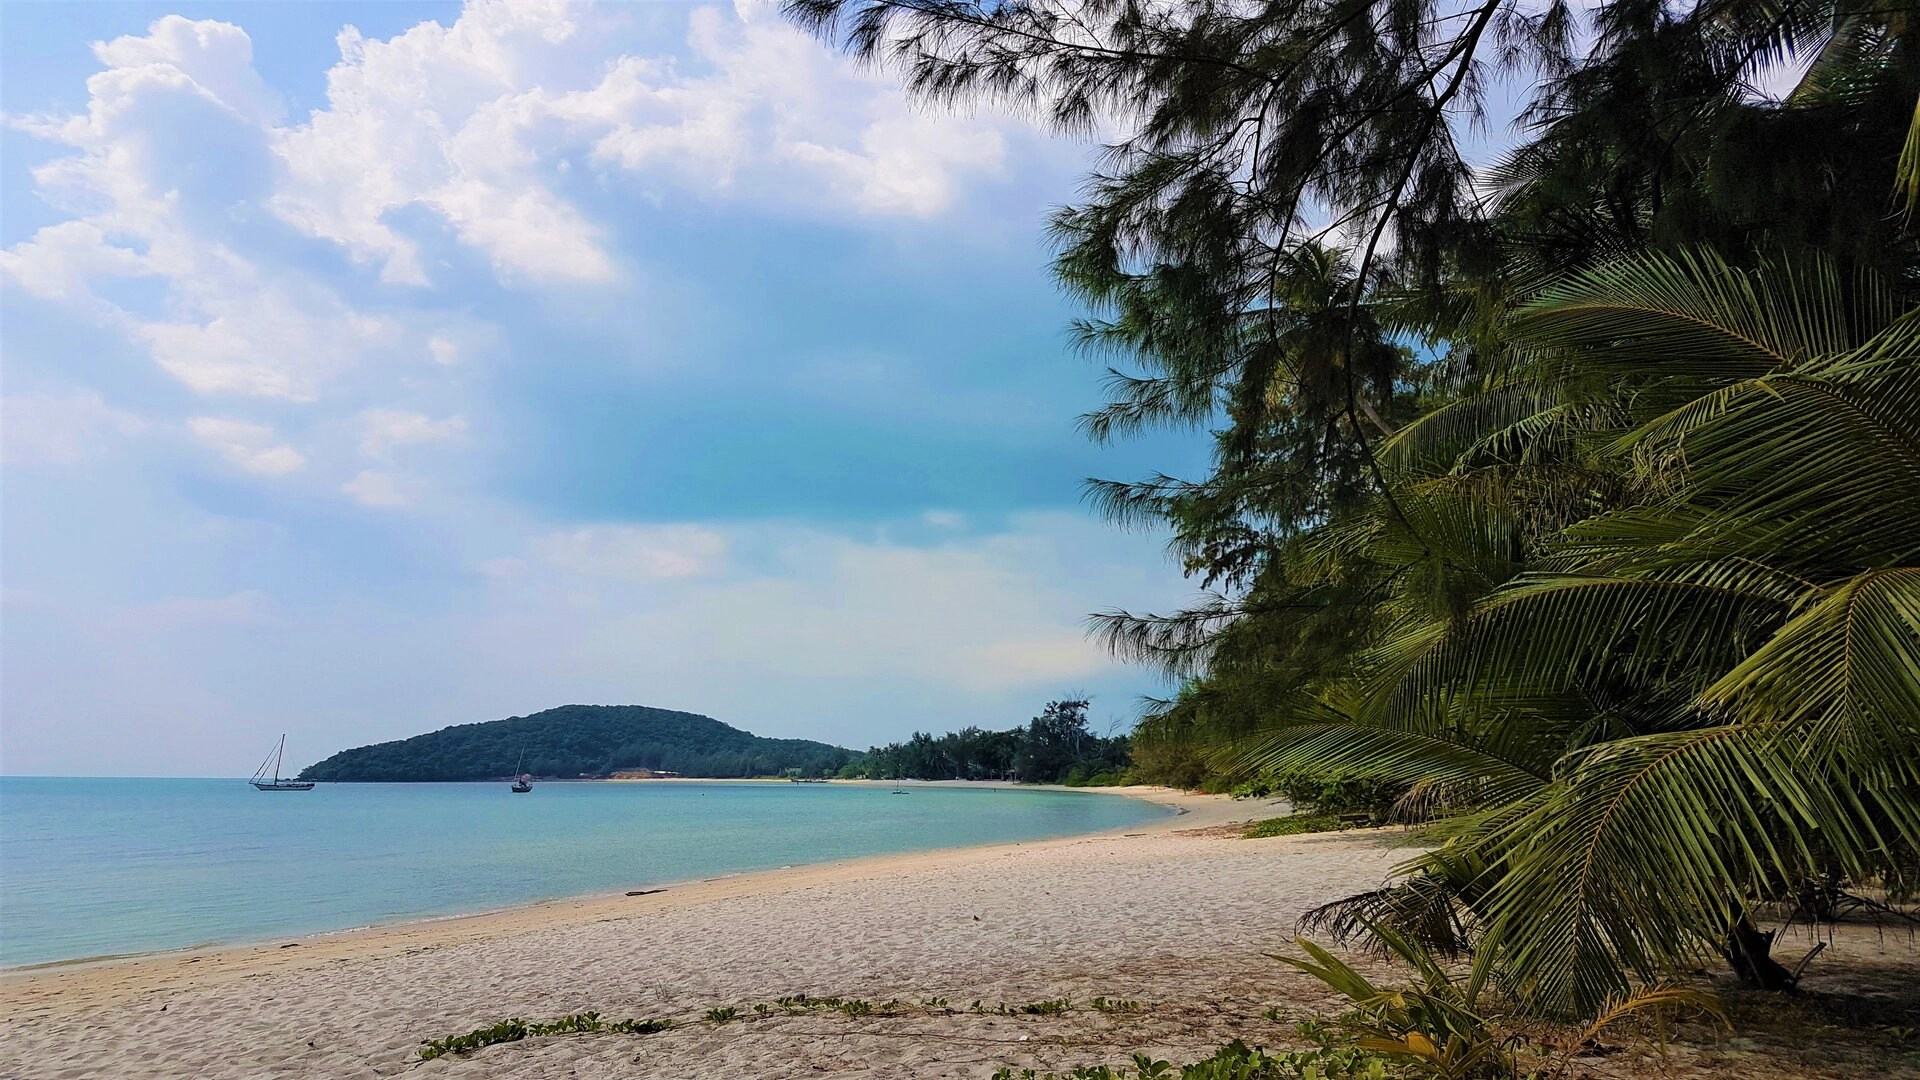 The ride from Phuket to Koh Samui: A traveler review